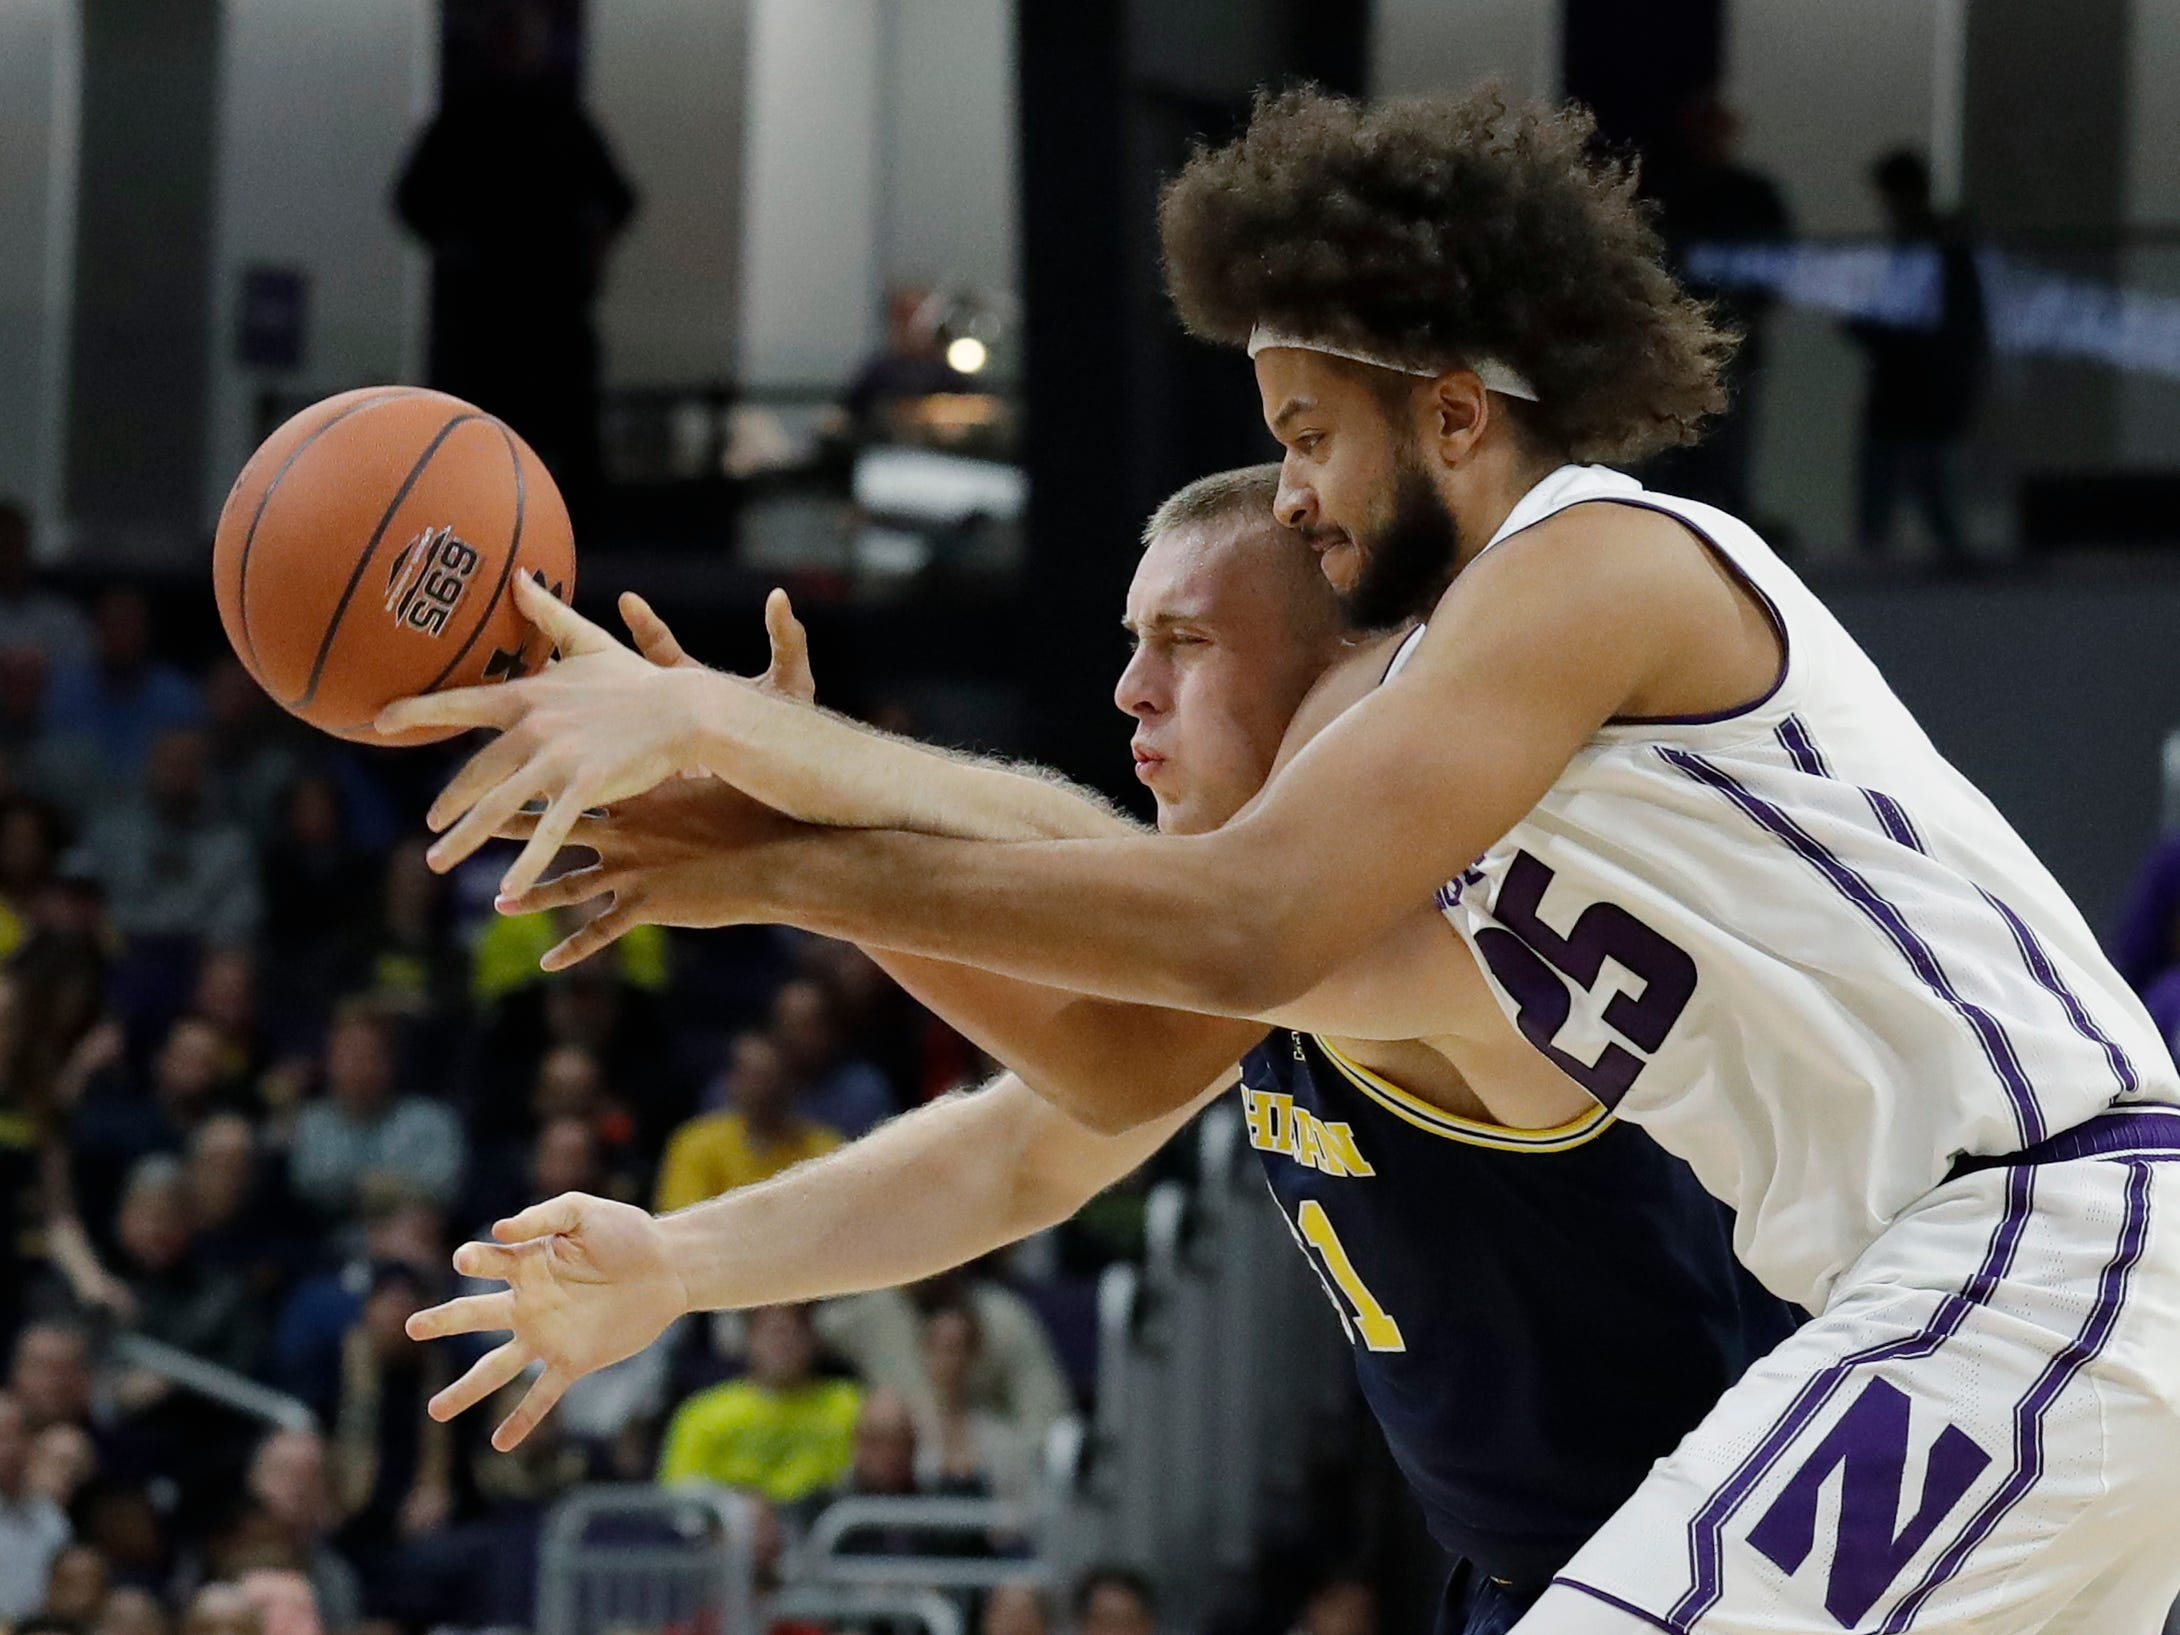 Northwestern center Barret Benson, right, and Michigan forward Austin Davis battle for a loose ball during the first half.